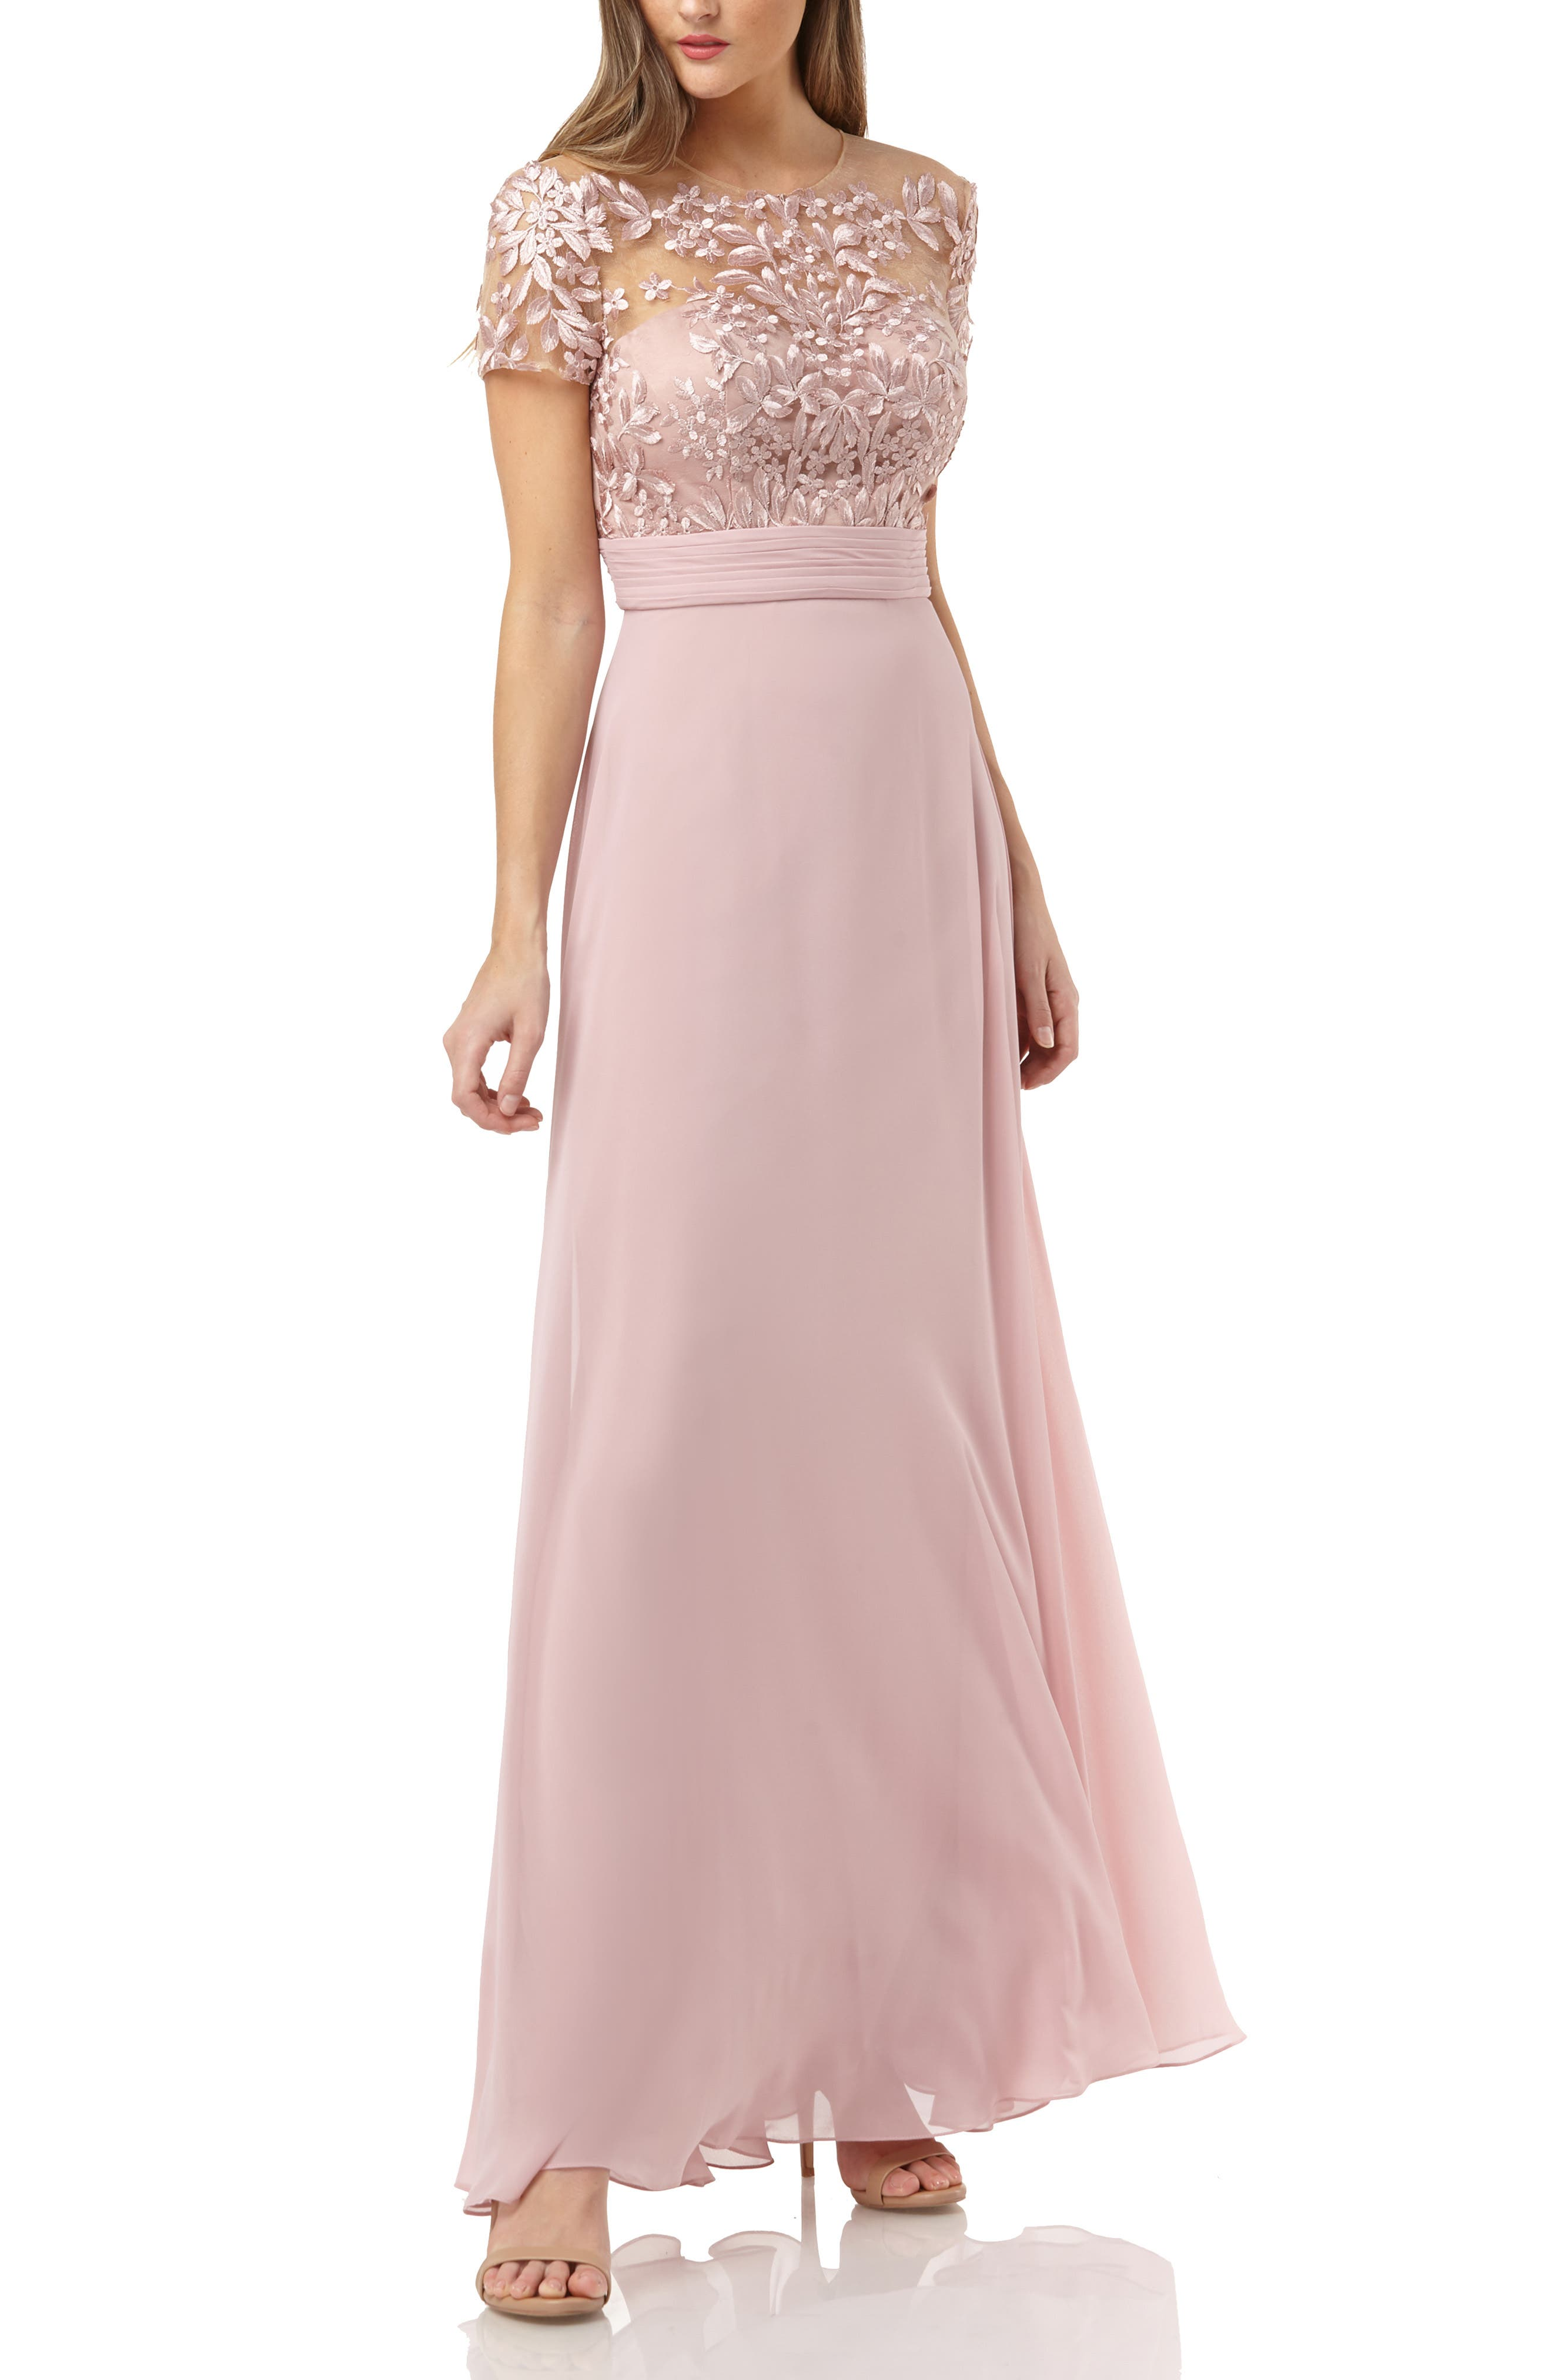 Petite Js Collections Embroidered Illusion Bodice Gown, Pink